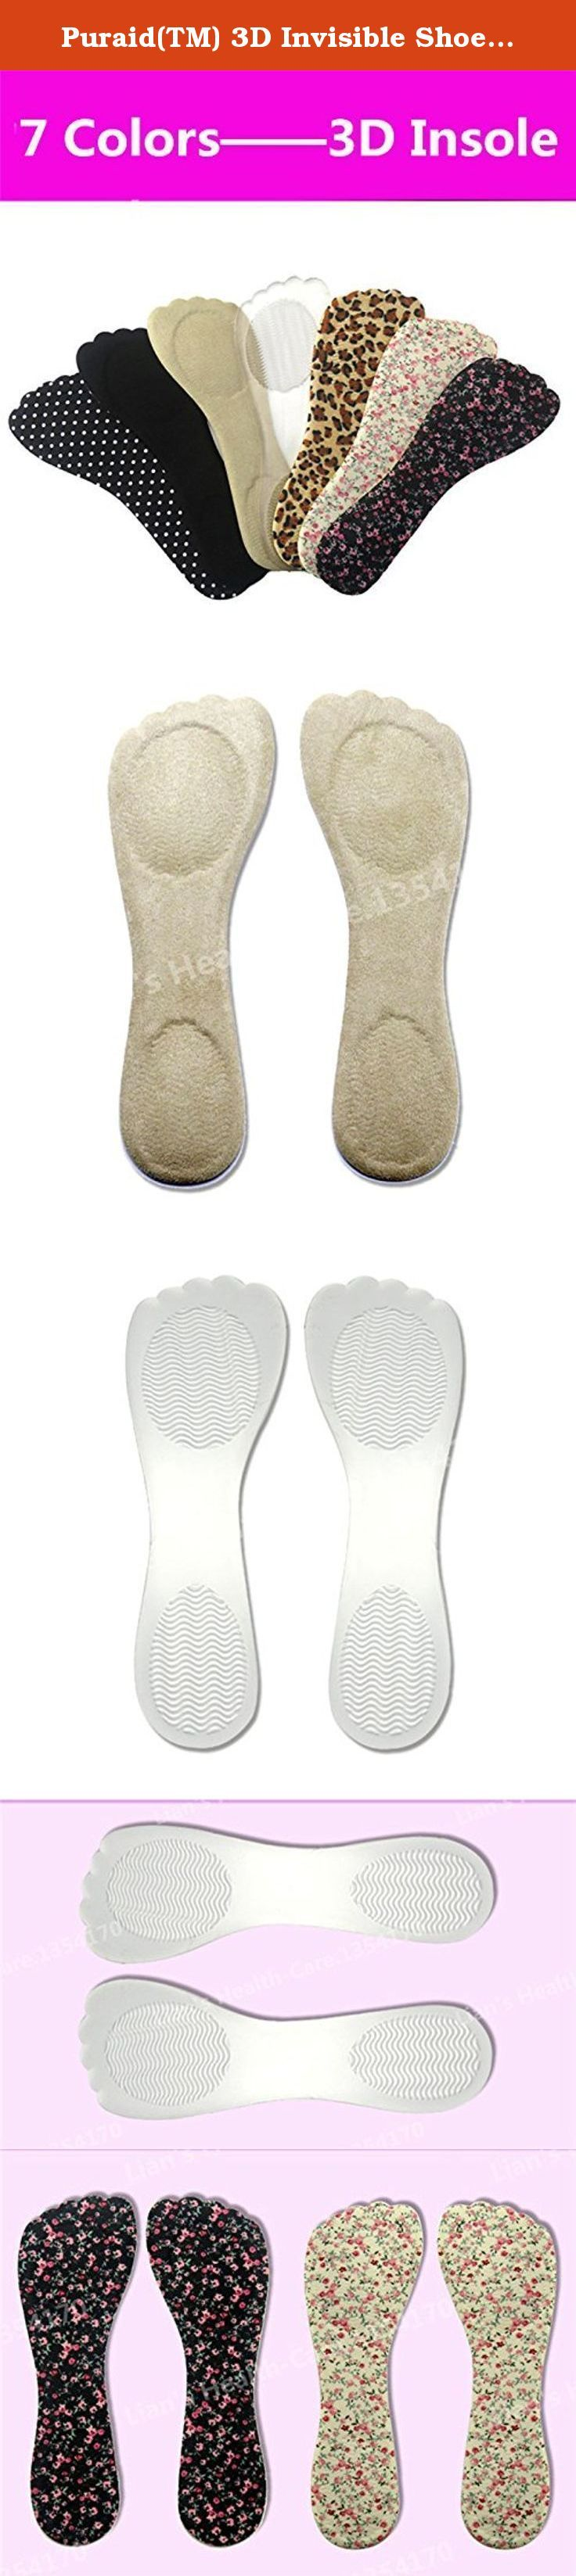 Puraid(TM) 3D Invisible Shoe Insoles for Women Size(34-38) Heel Cushion Pain Relief protetor de calcanhar palmilha salto alto Comfort Pads. Item Type:Insoles Shoe Width:Medium(B,M) Pattern Type:Solid Feature:Anti-Slippery,Hard-Wearing,Shock-Absorbant,Arch Support Material:PU Size:Free(Eur 34-38) Pls leave a message to tell us the Color.Number(following picture) u want,or will send u random color.